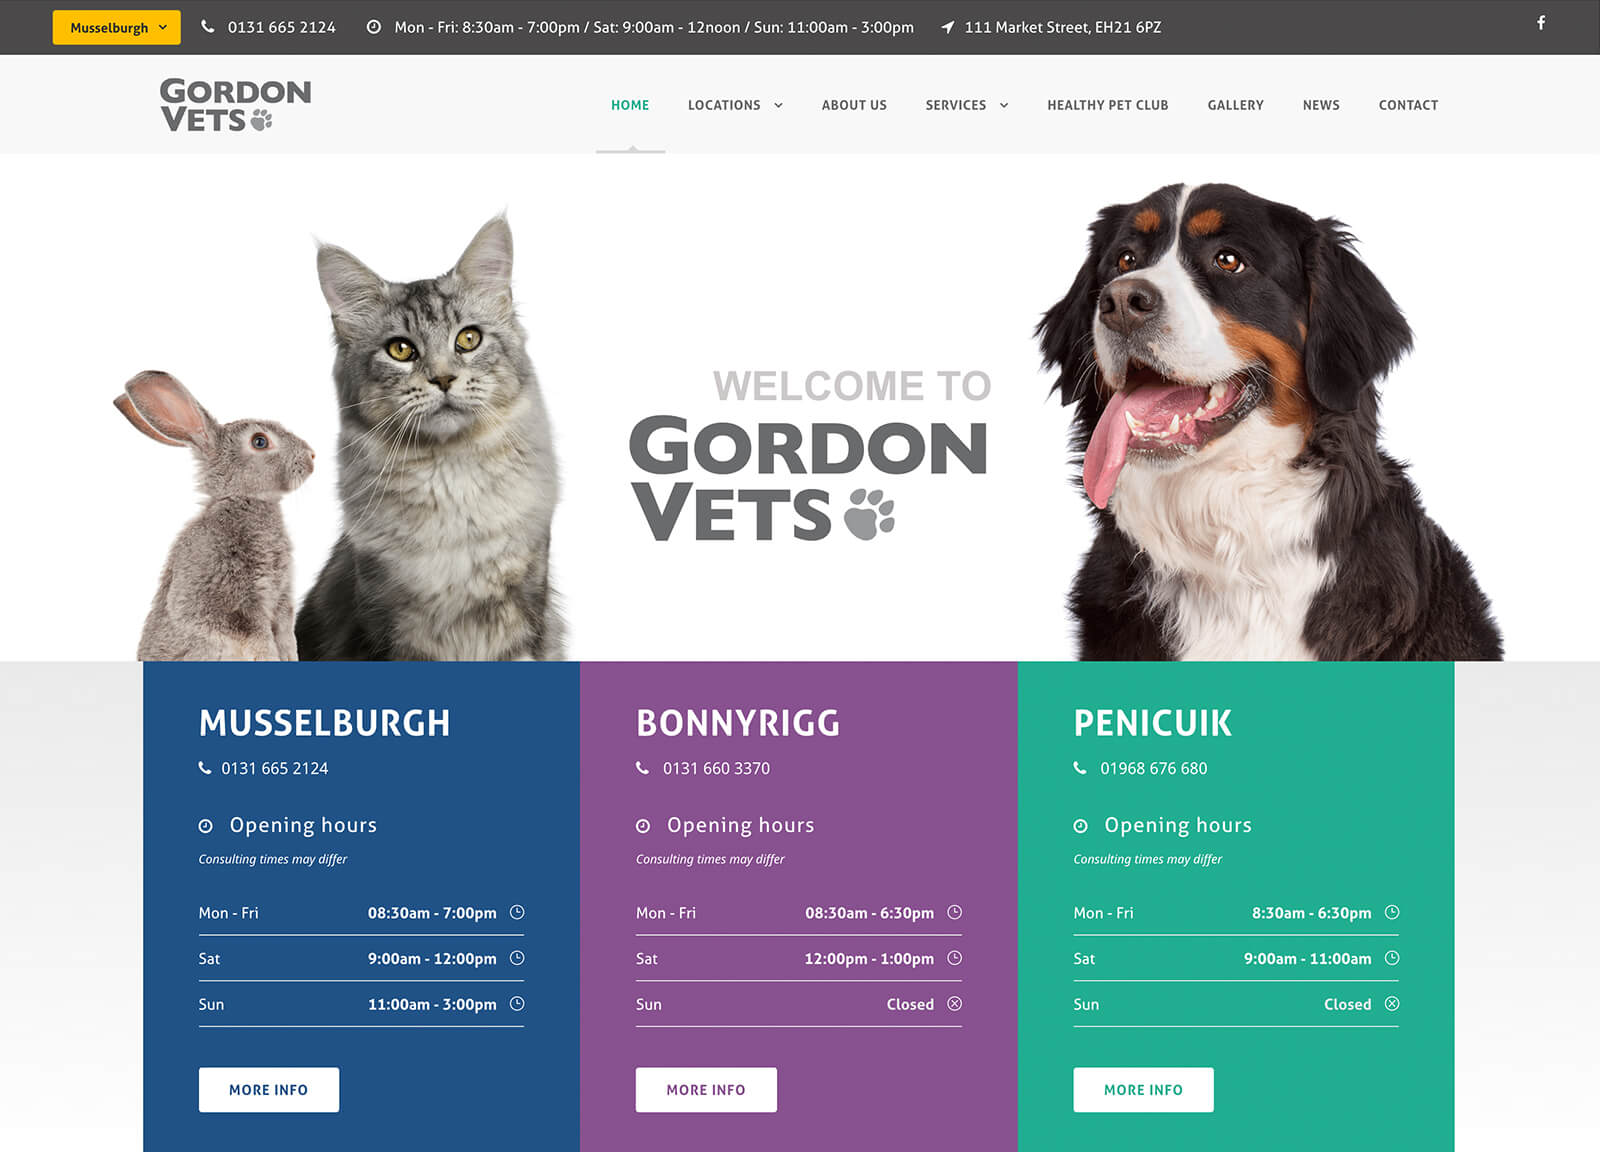 Gordon Vets new home page design